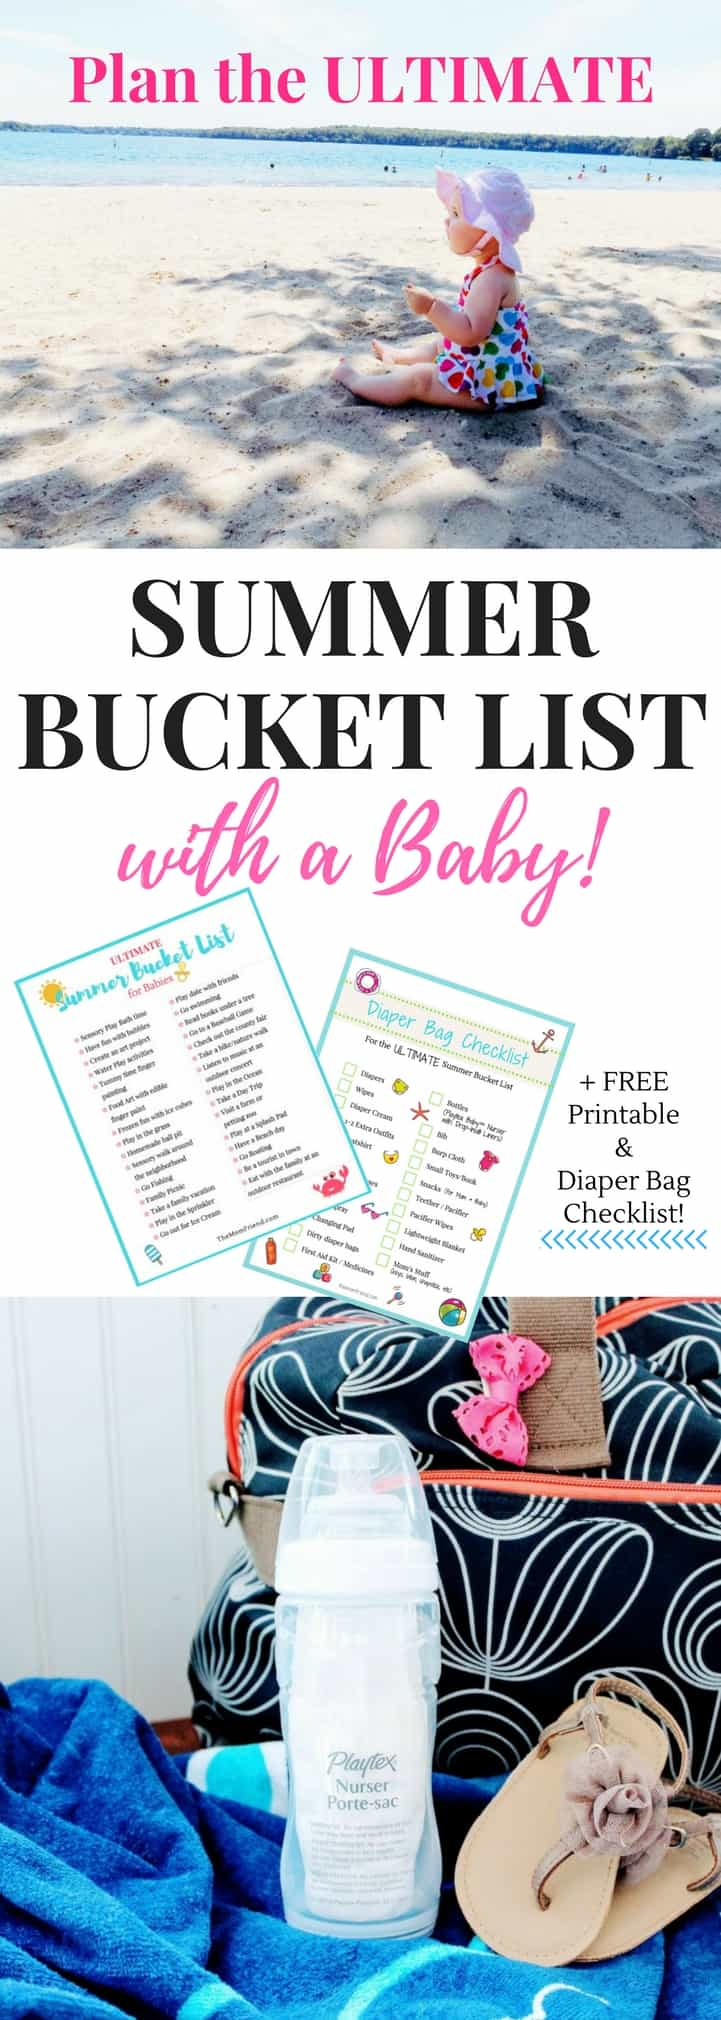 GREAT ideas on this Ultimate Summer Bucket List for Babies to create fun and lasting memories with your infant. Get out and explore, or engage in sensory play at home with these easy ideas. *FREE PRINTABLE Summer Bucket List + bonus FREE Diaper Bag Checklist* to keep you prepared!   summer activities for babies   summer ideas for toddlers   kids activities   play with baby   how to pack a diaper bag   diaper bag essentials   diaper bag for travel